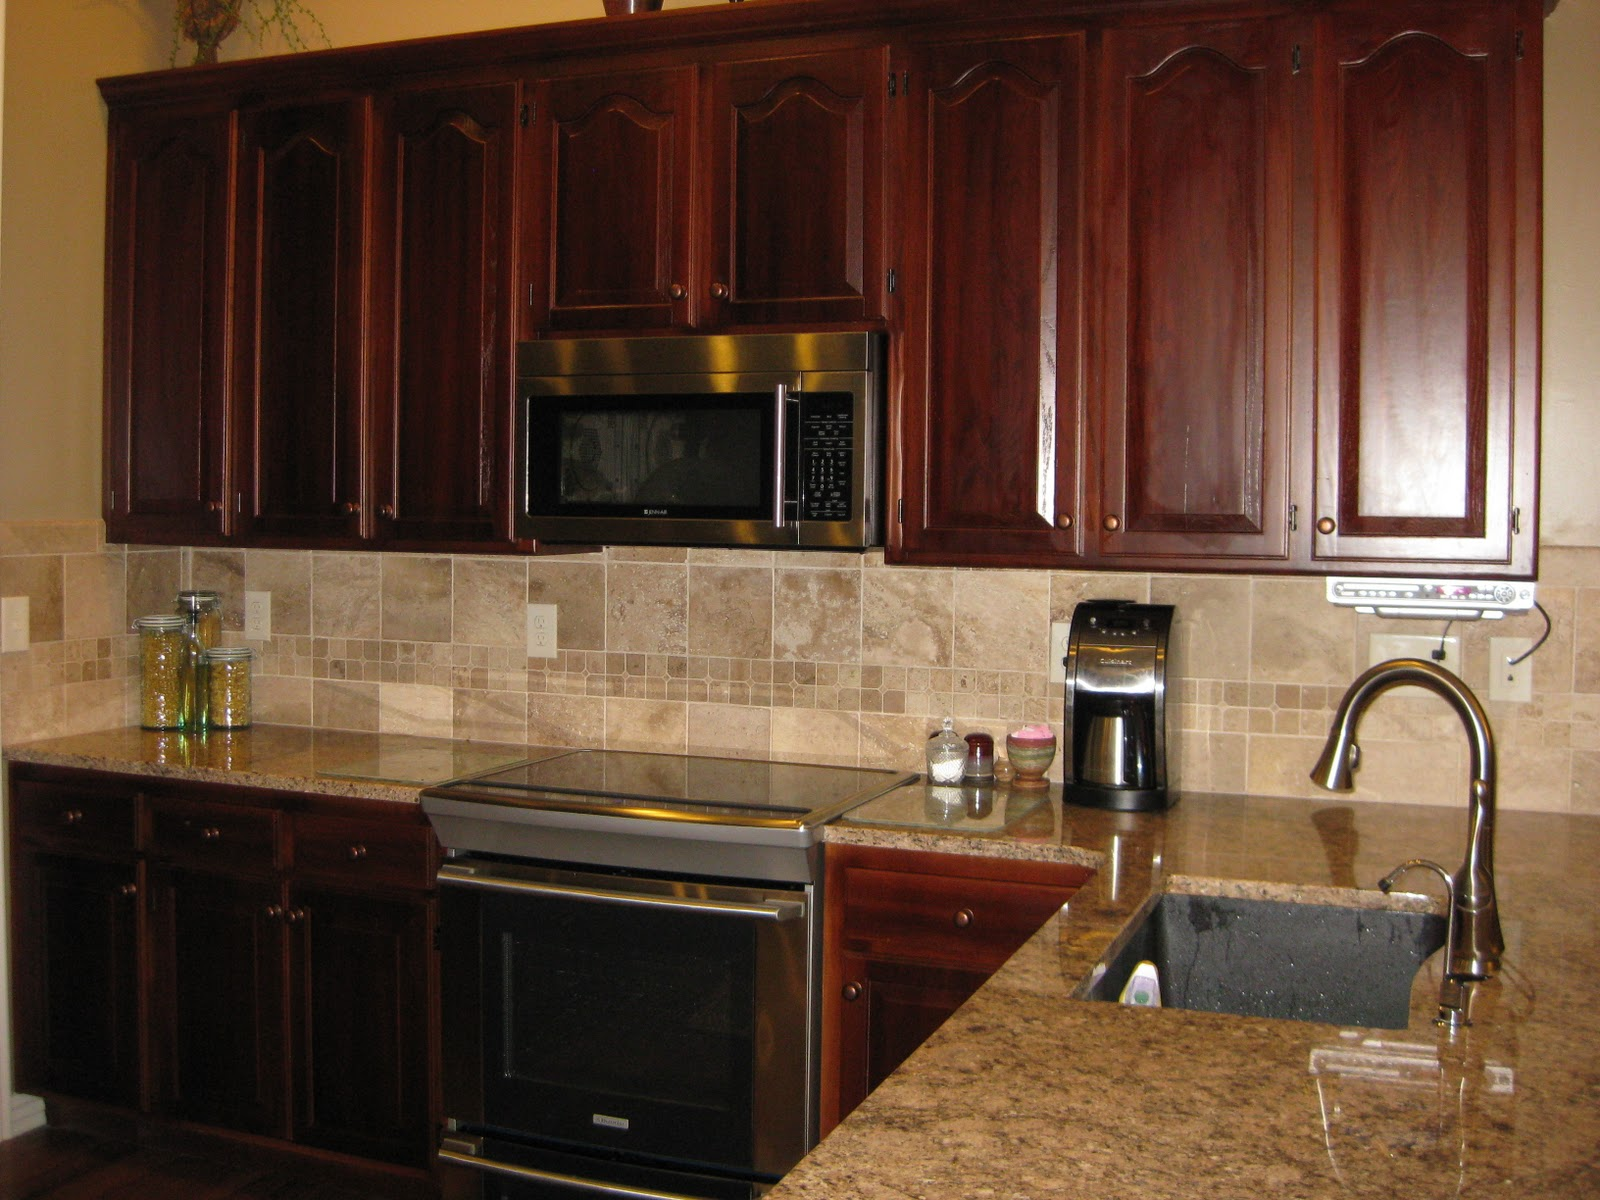 Kitchen Cabinets with Microwave